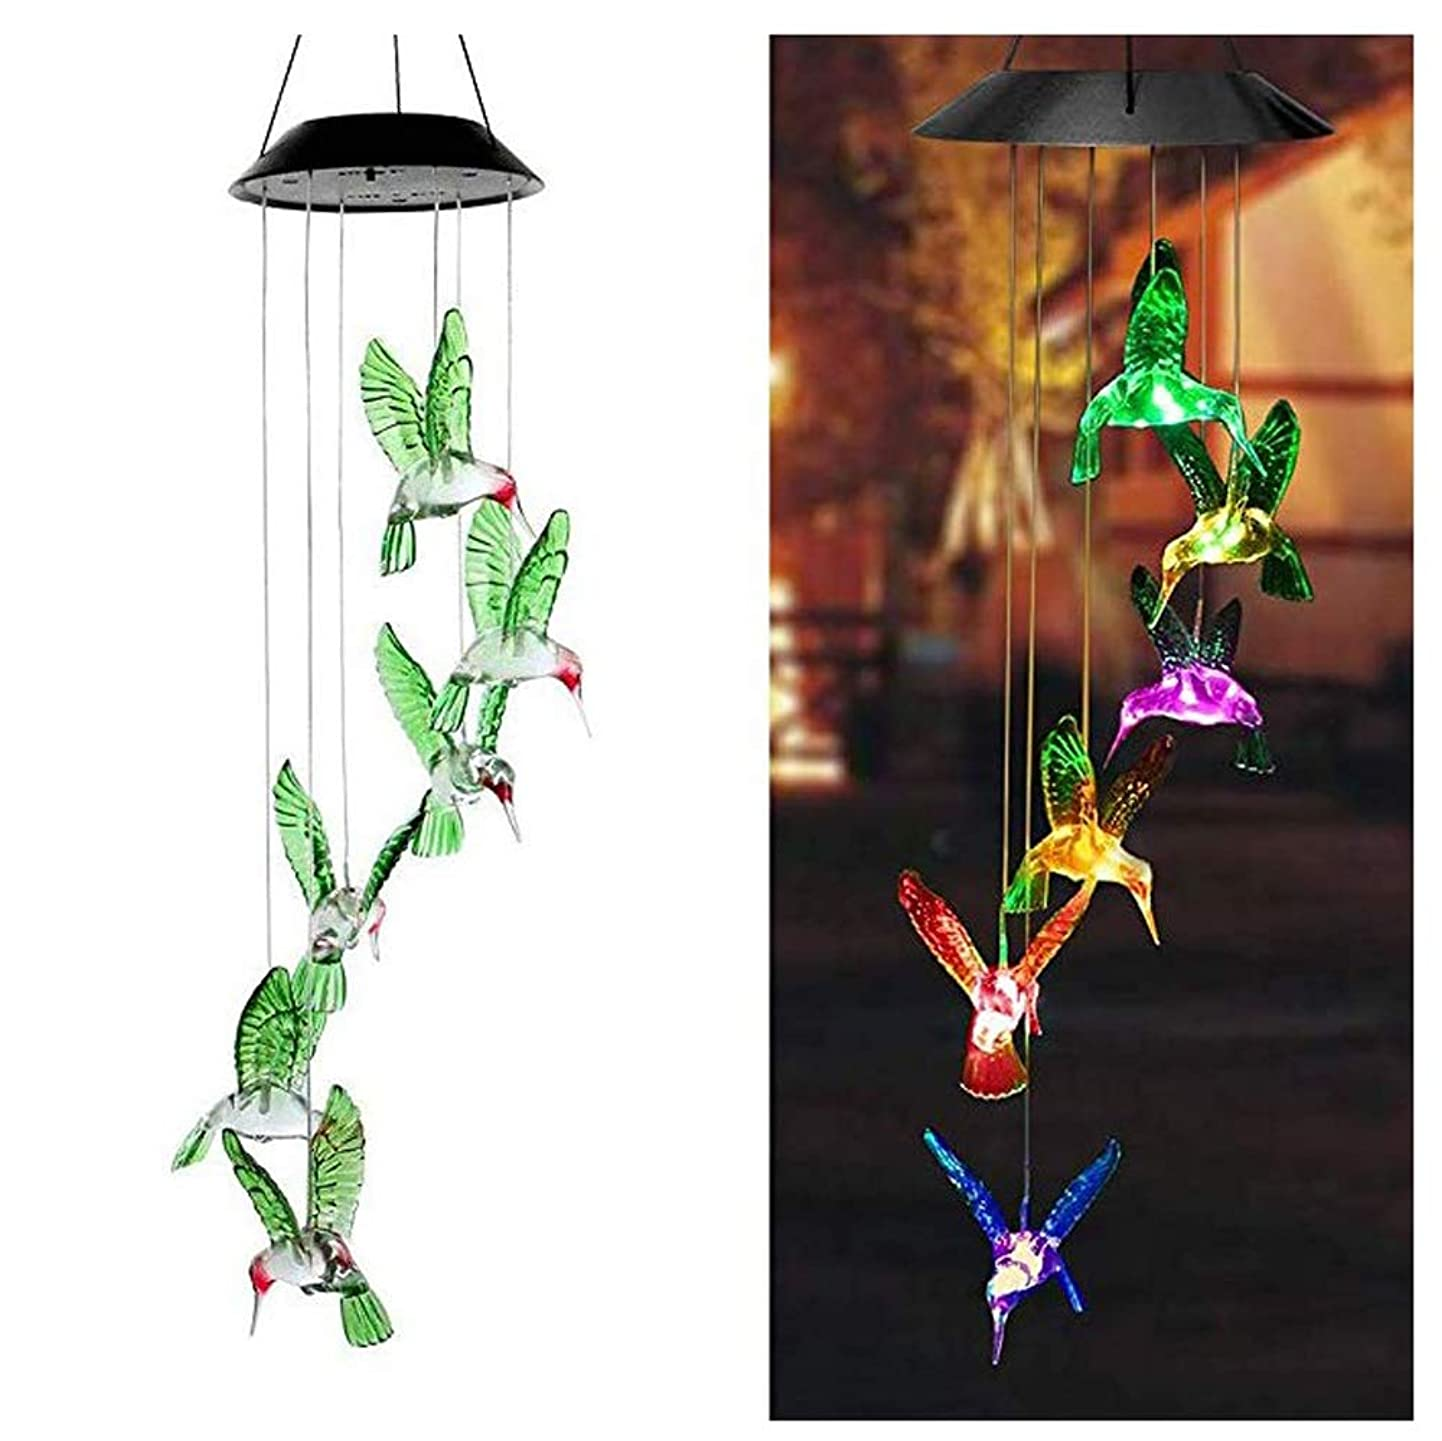 CIAOYE Color-Changing Solar Wind Chime Light LED Changing Wind Bell Waterproof Six Hummingbird Wind Chimes for Home Party Night Garden Decoration, Green mrphcurwrcg7